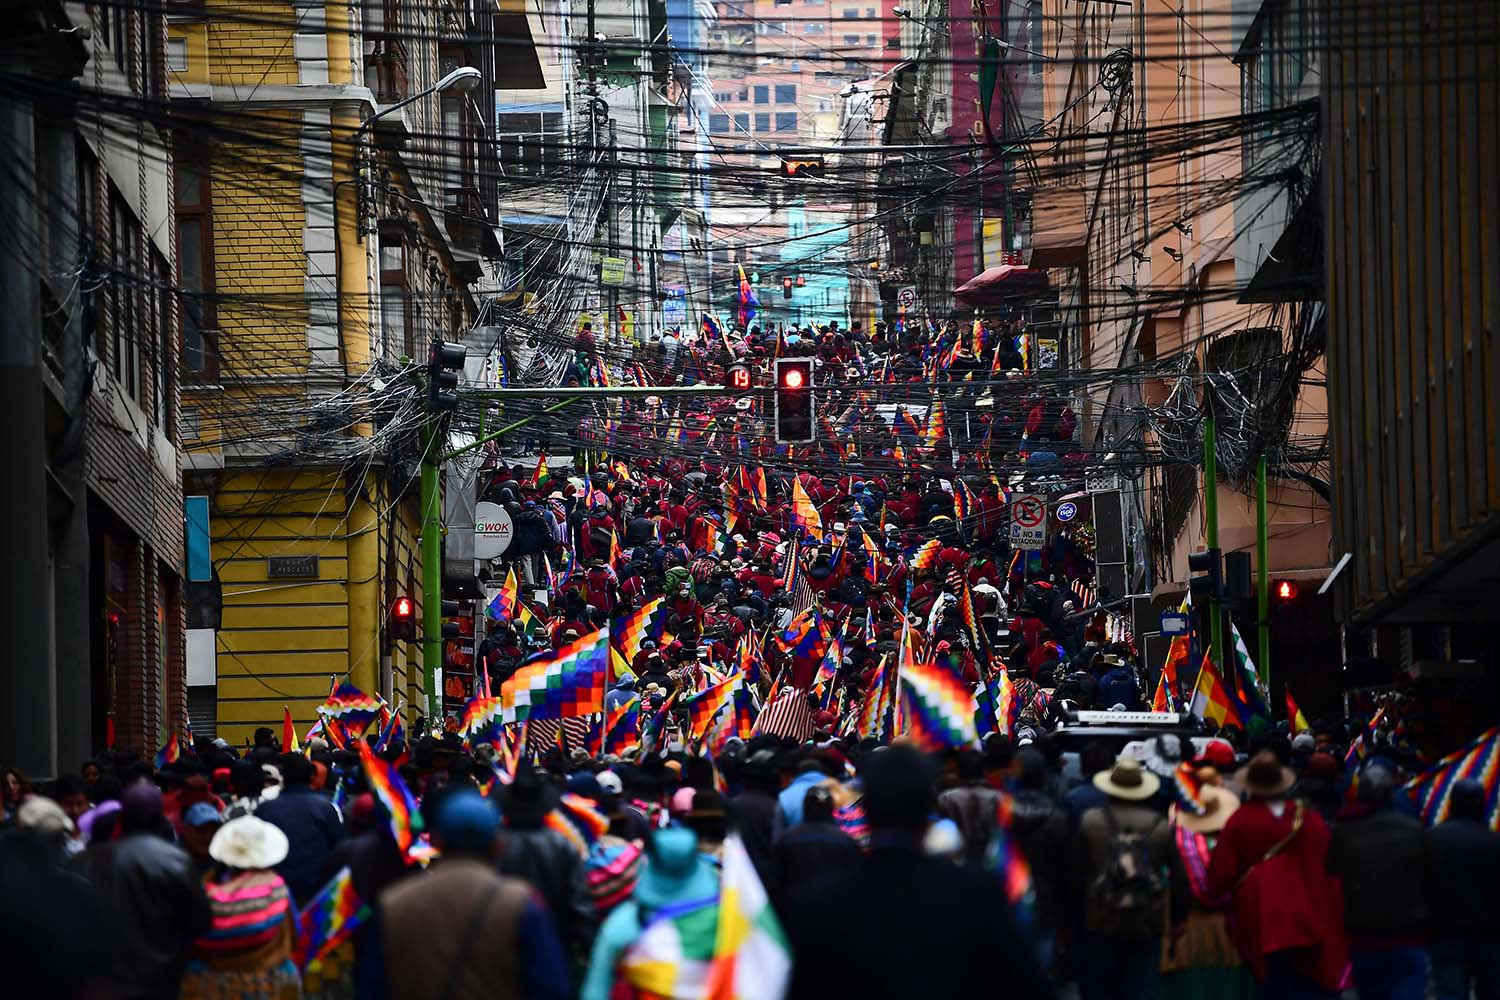 Supporters of Morales take to the streets in La Paz on Nov. 14. RONALDO SCHEMIDT/AFP via Getty Images